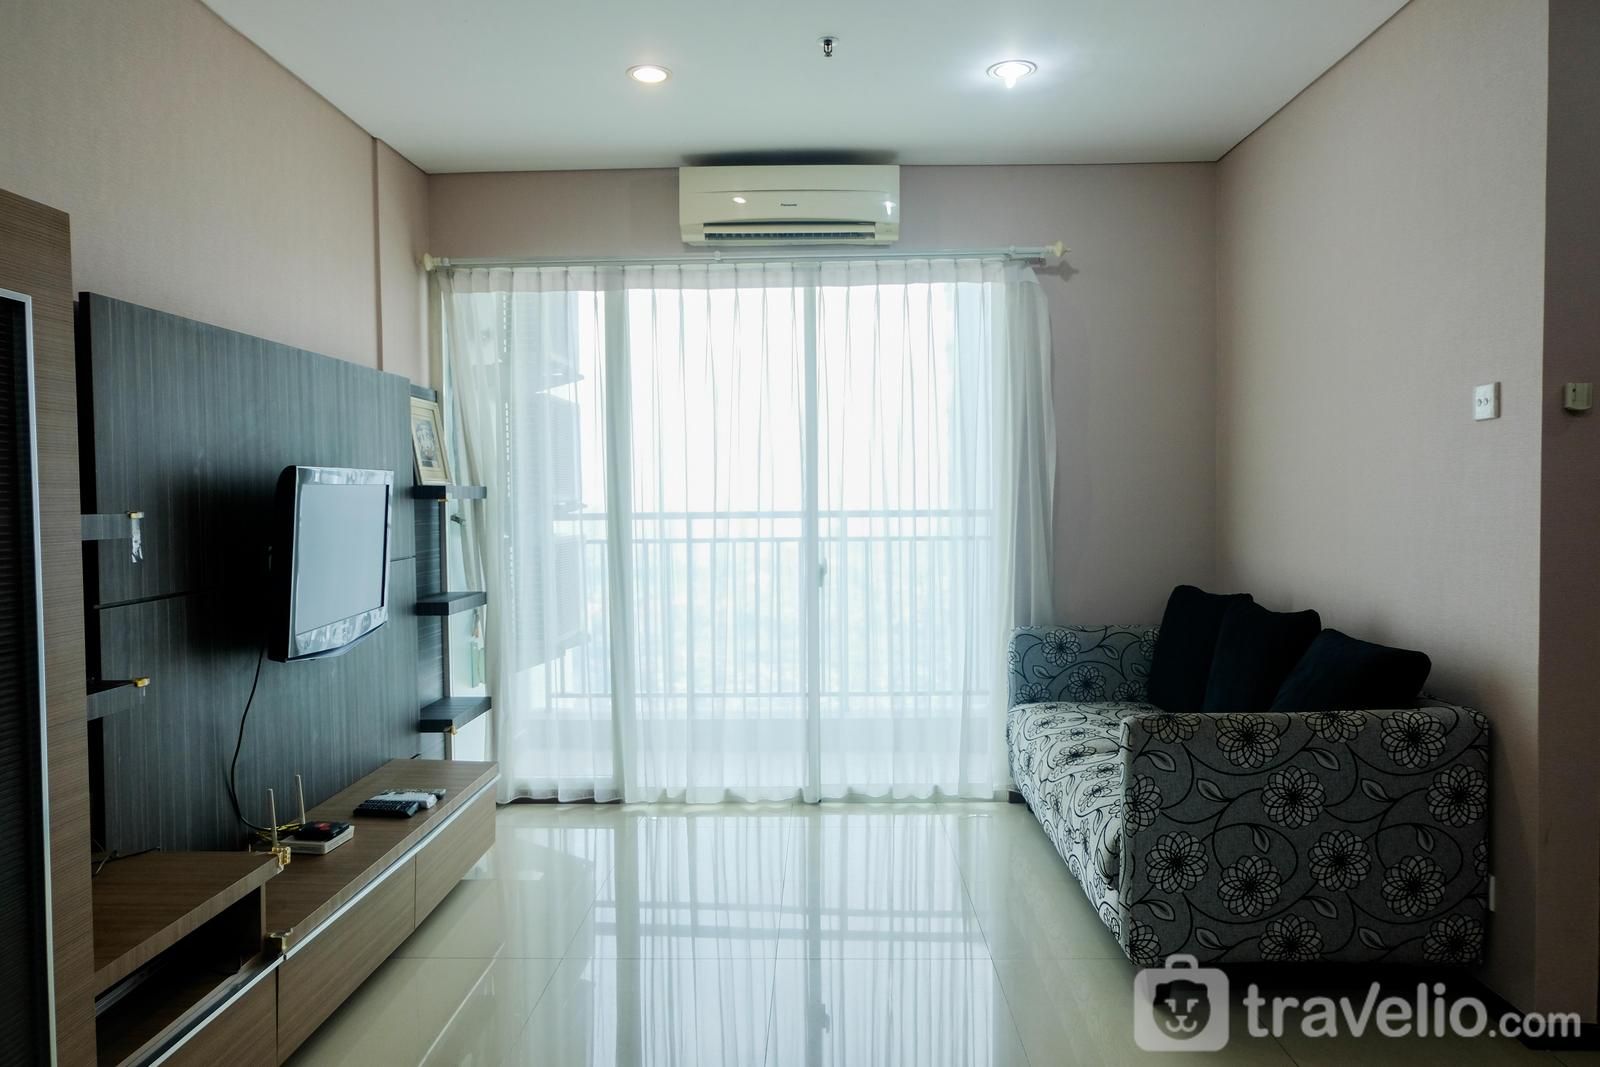 Thamrin Residence - Exclusive and Cozy 3BR Apartment @ Thamrin Residence By Travelio